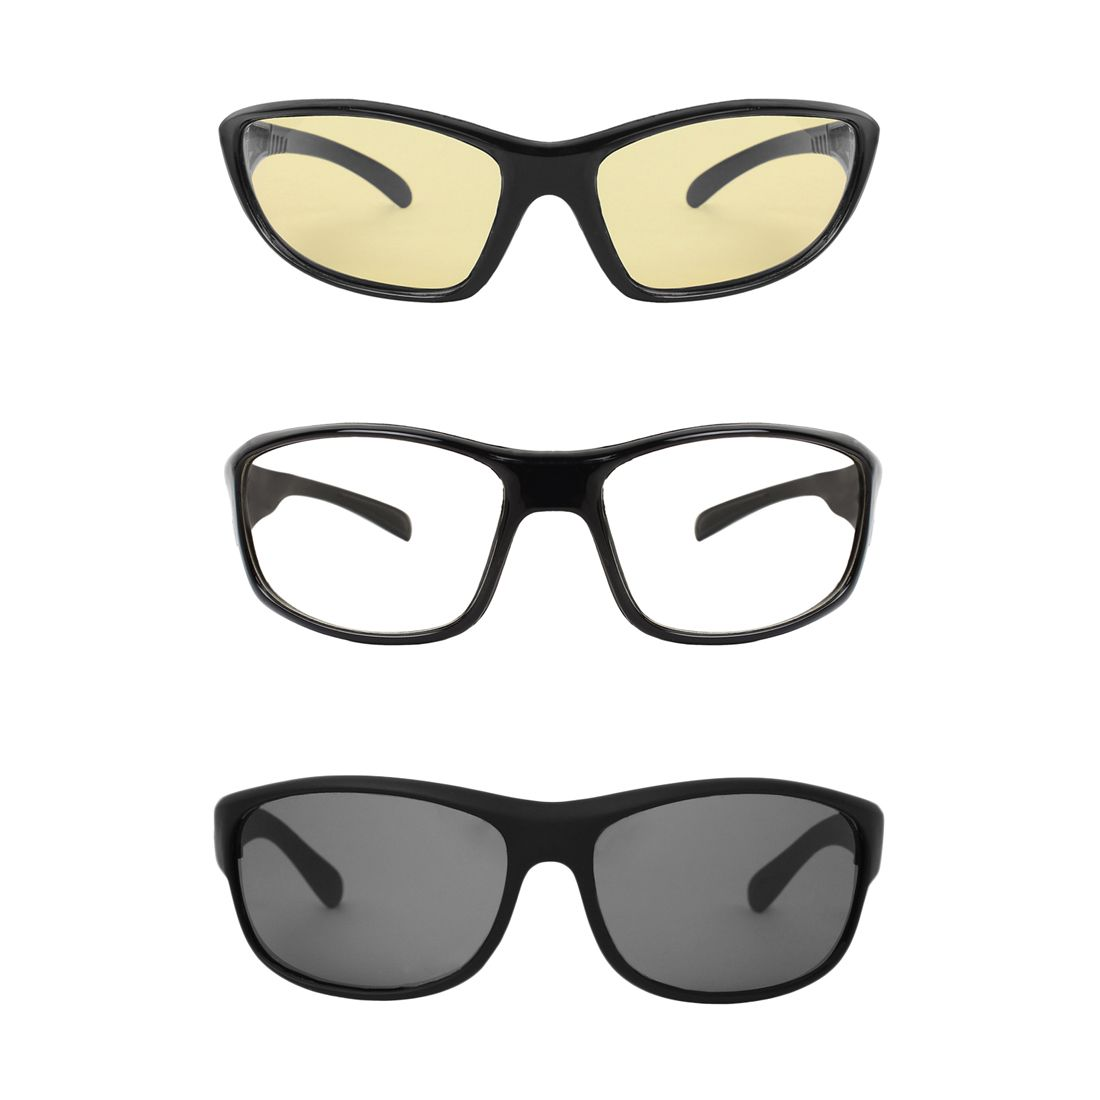 Sunglasses Combo ( 3 pairs of sunglasses ) svg royalty free library